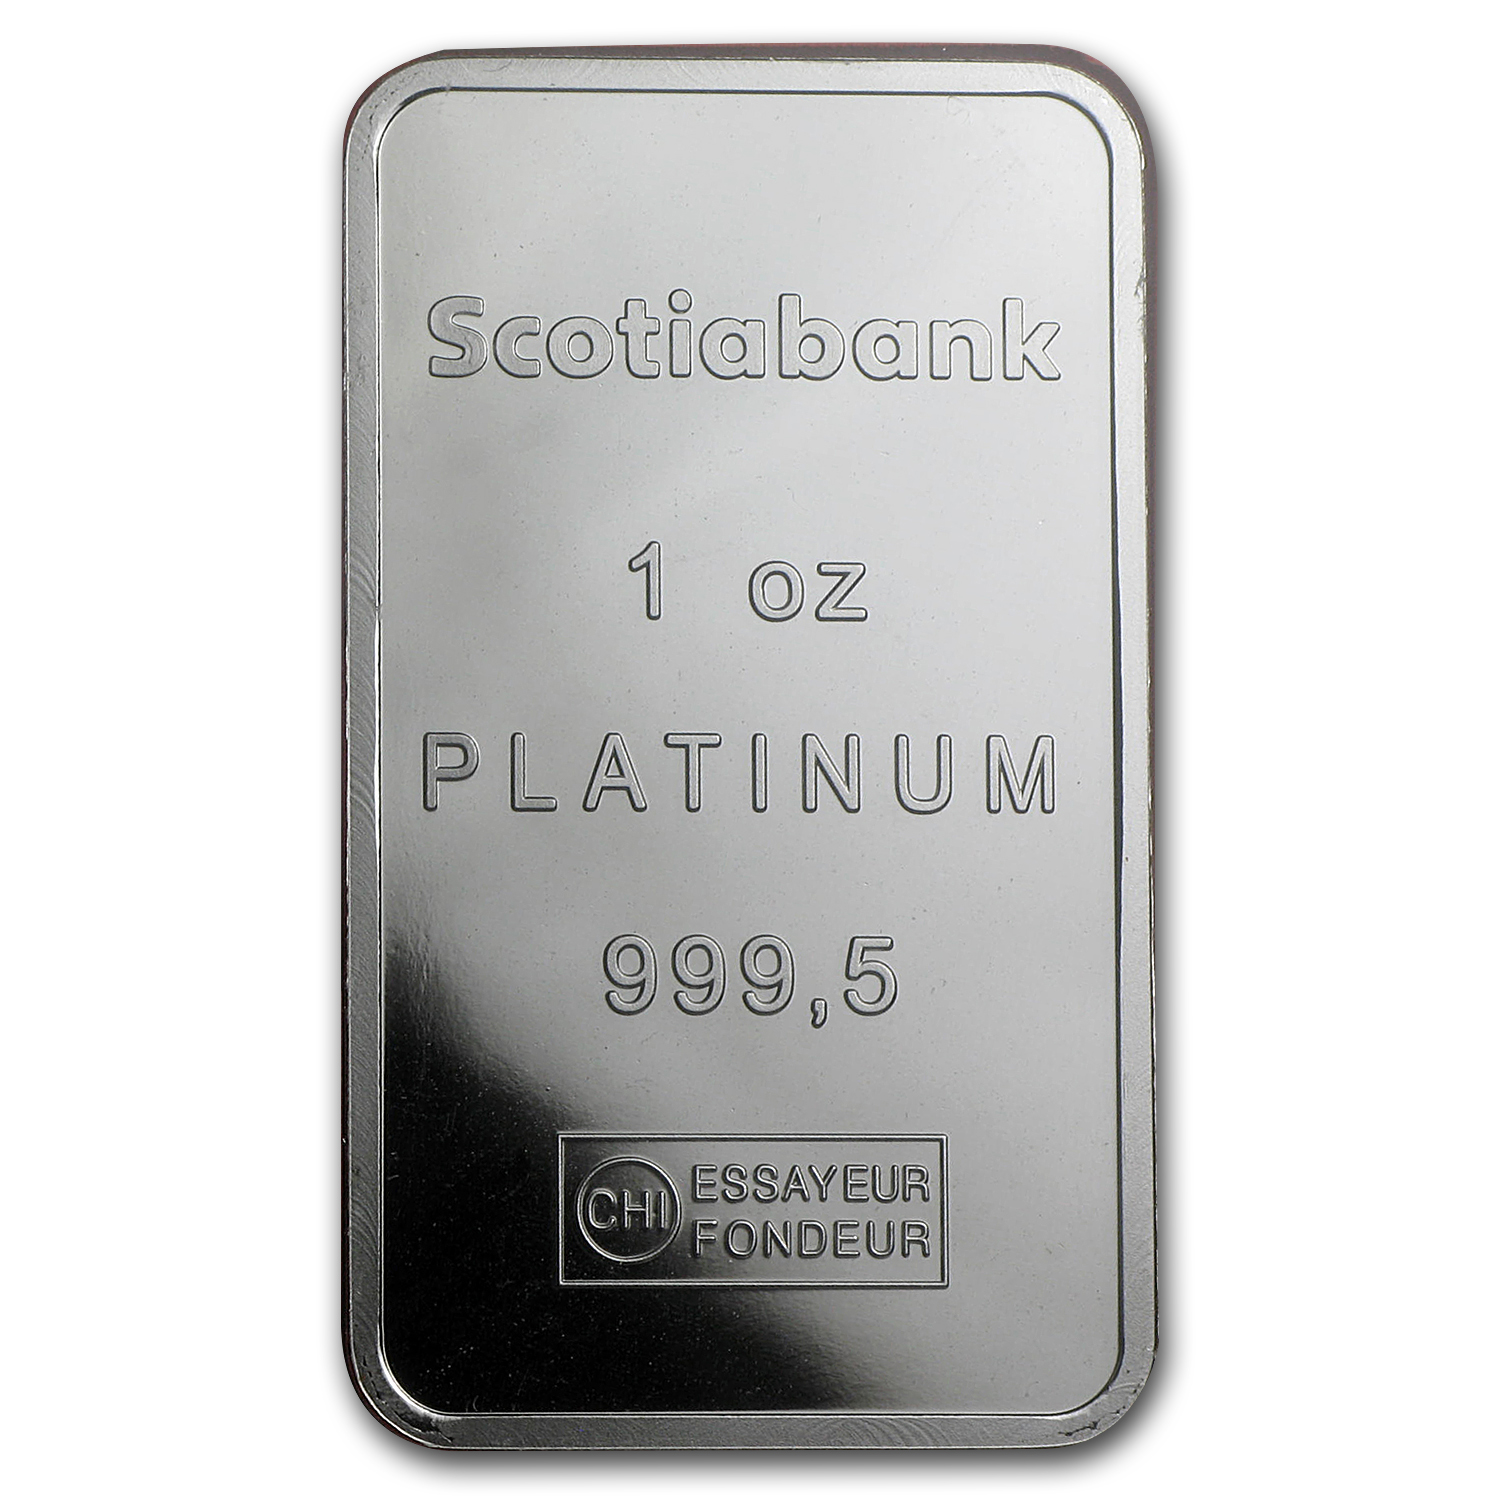 1 oz Platinum Bar - Scotiabank (.999+ Fine, In Assay)